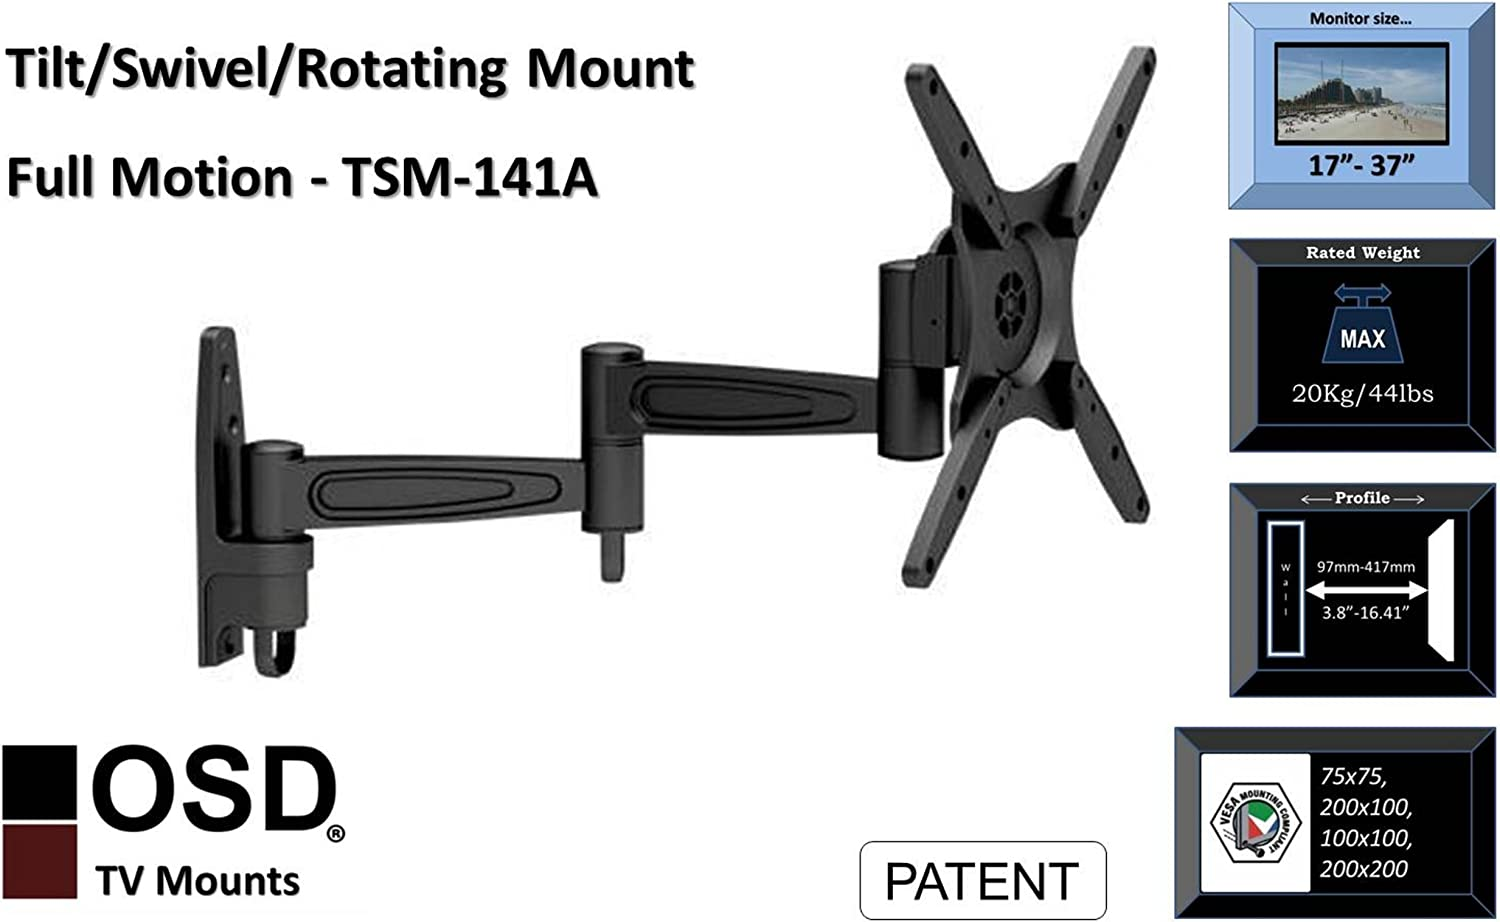 OSD Audio TSM-141A Dual Arm Full Motion Aluminum Wall Mount with Anti-Theft Design for 17